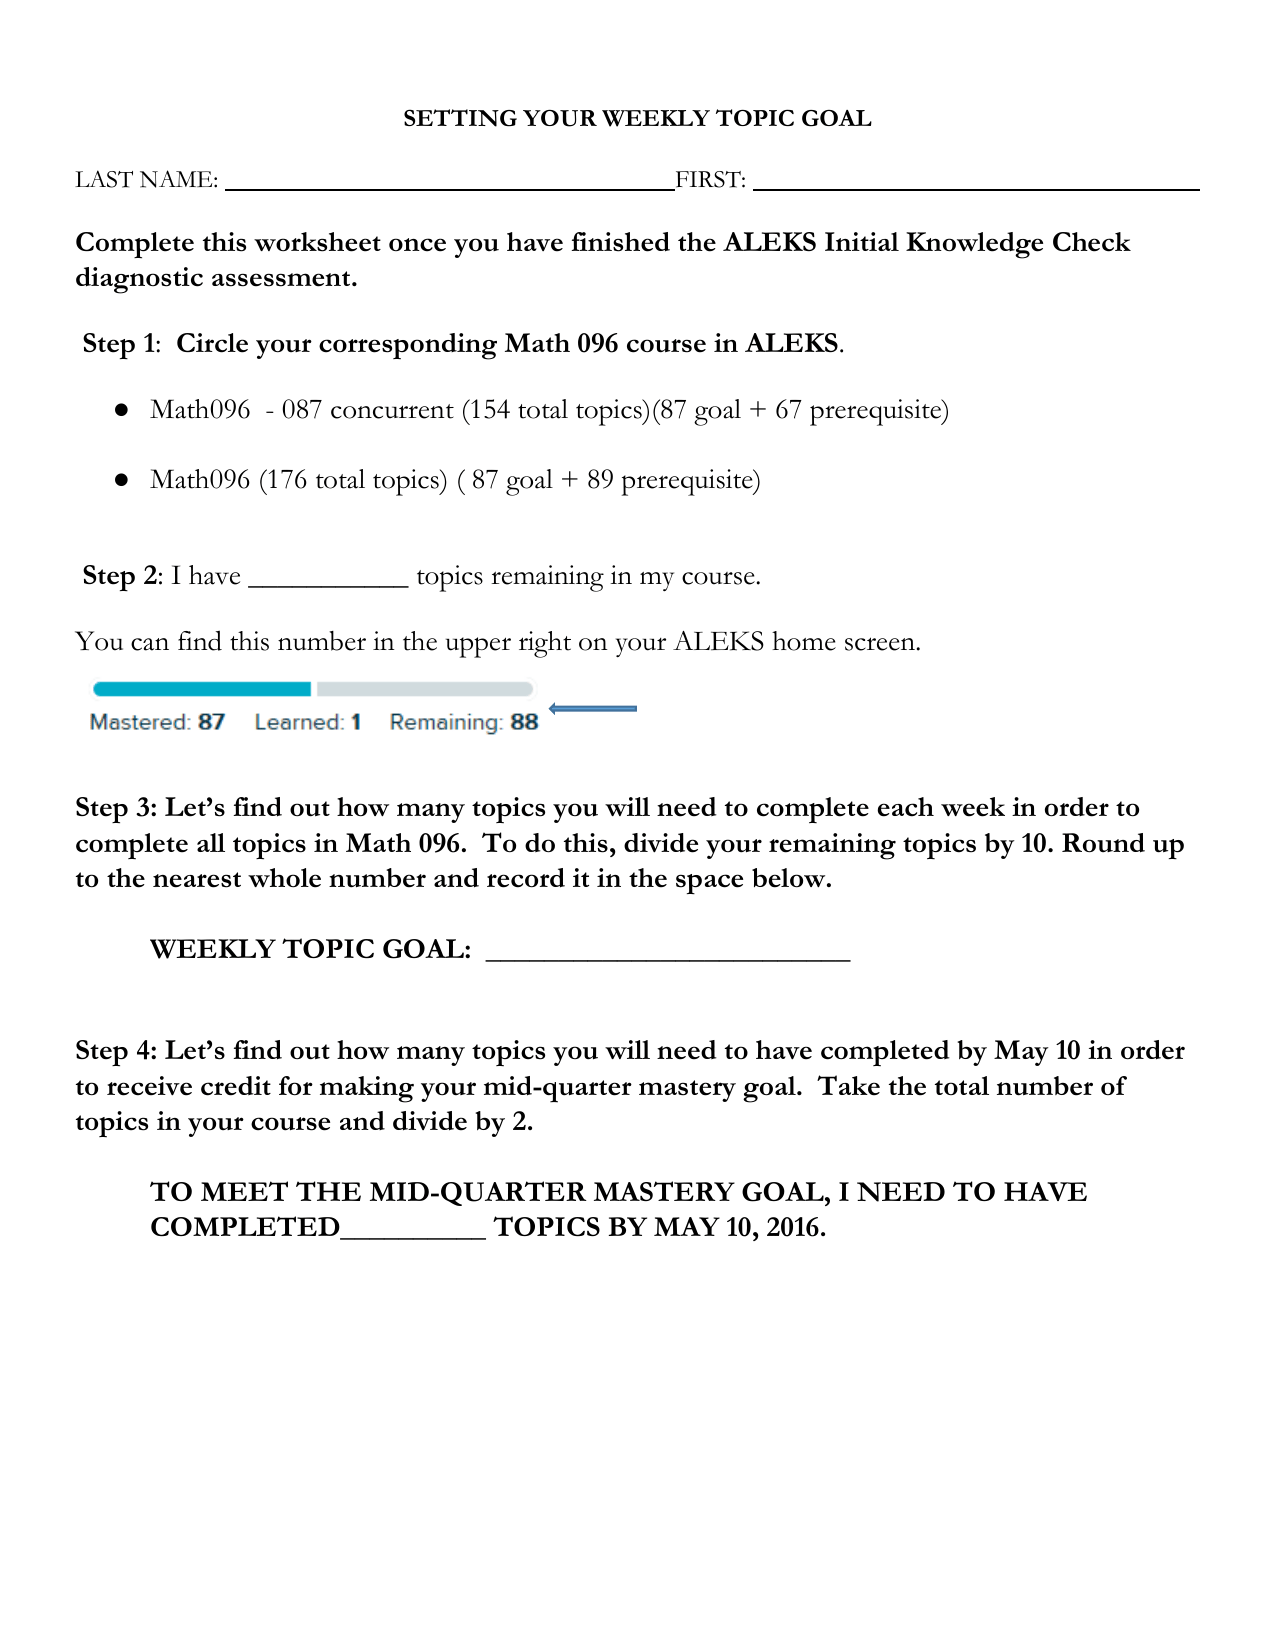 Complete This Worksheet Once You Have Finished The Aleks